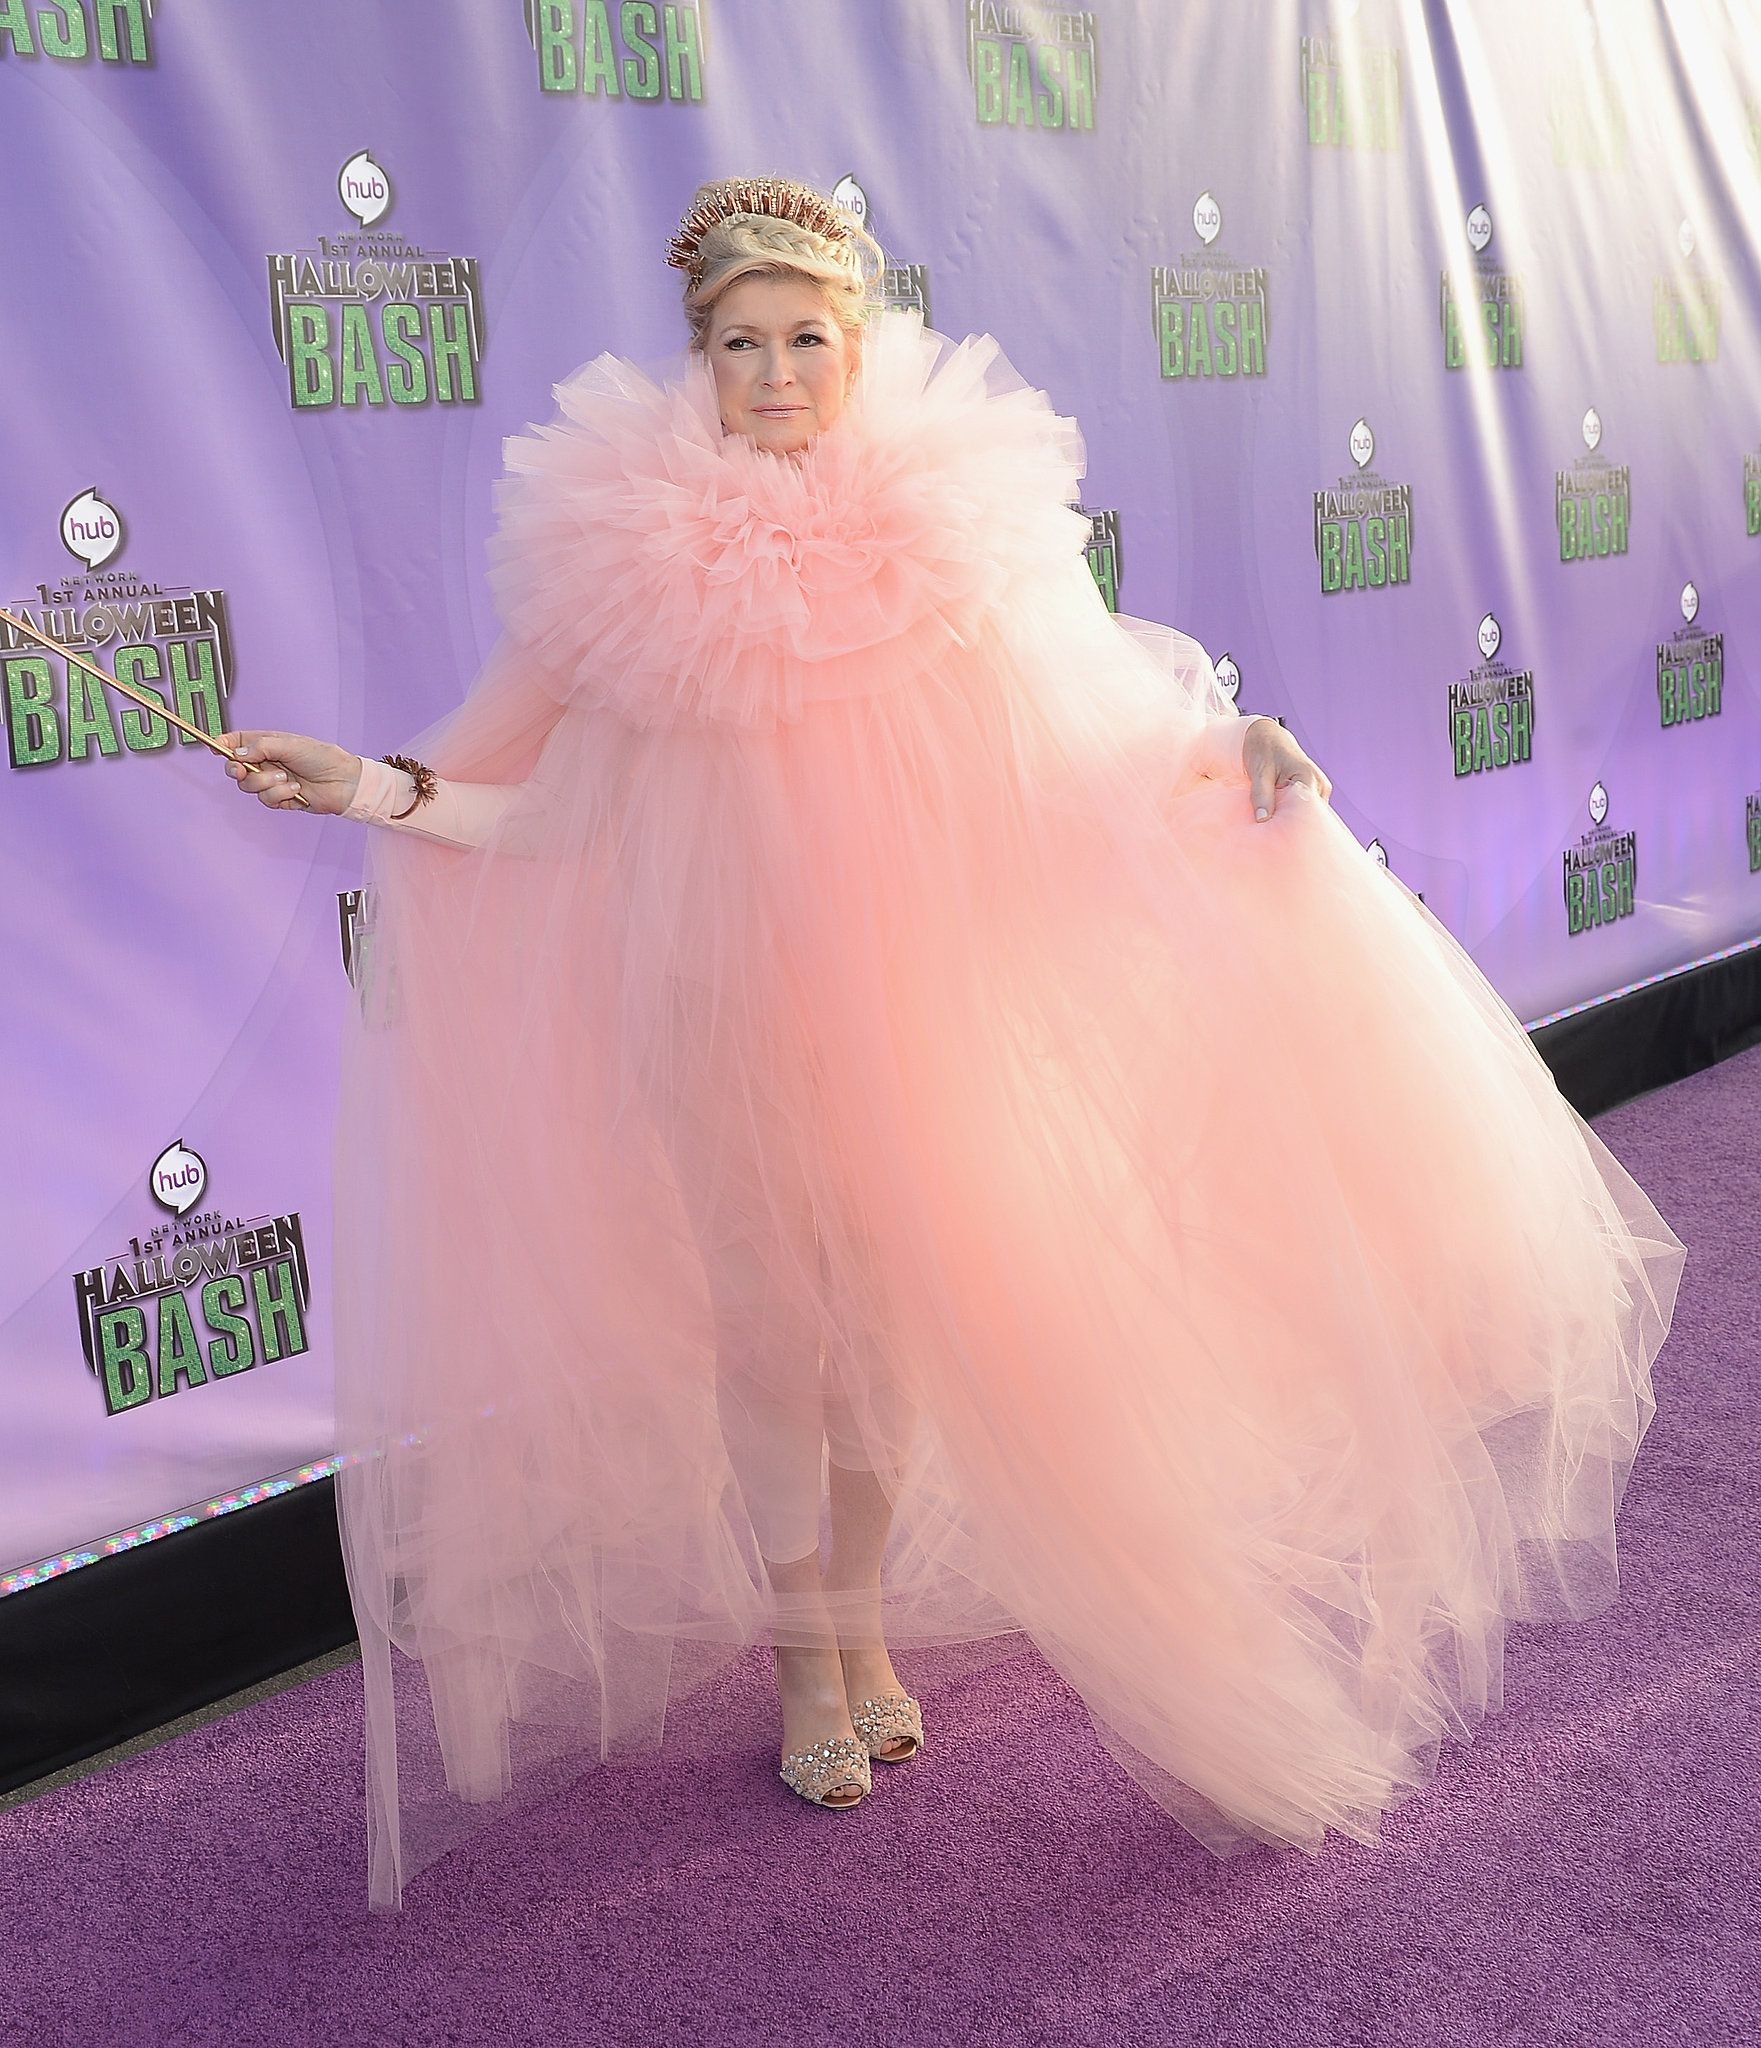 Martha Stewart as Glinda the Good Witch | Witches and Celebrity ...